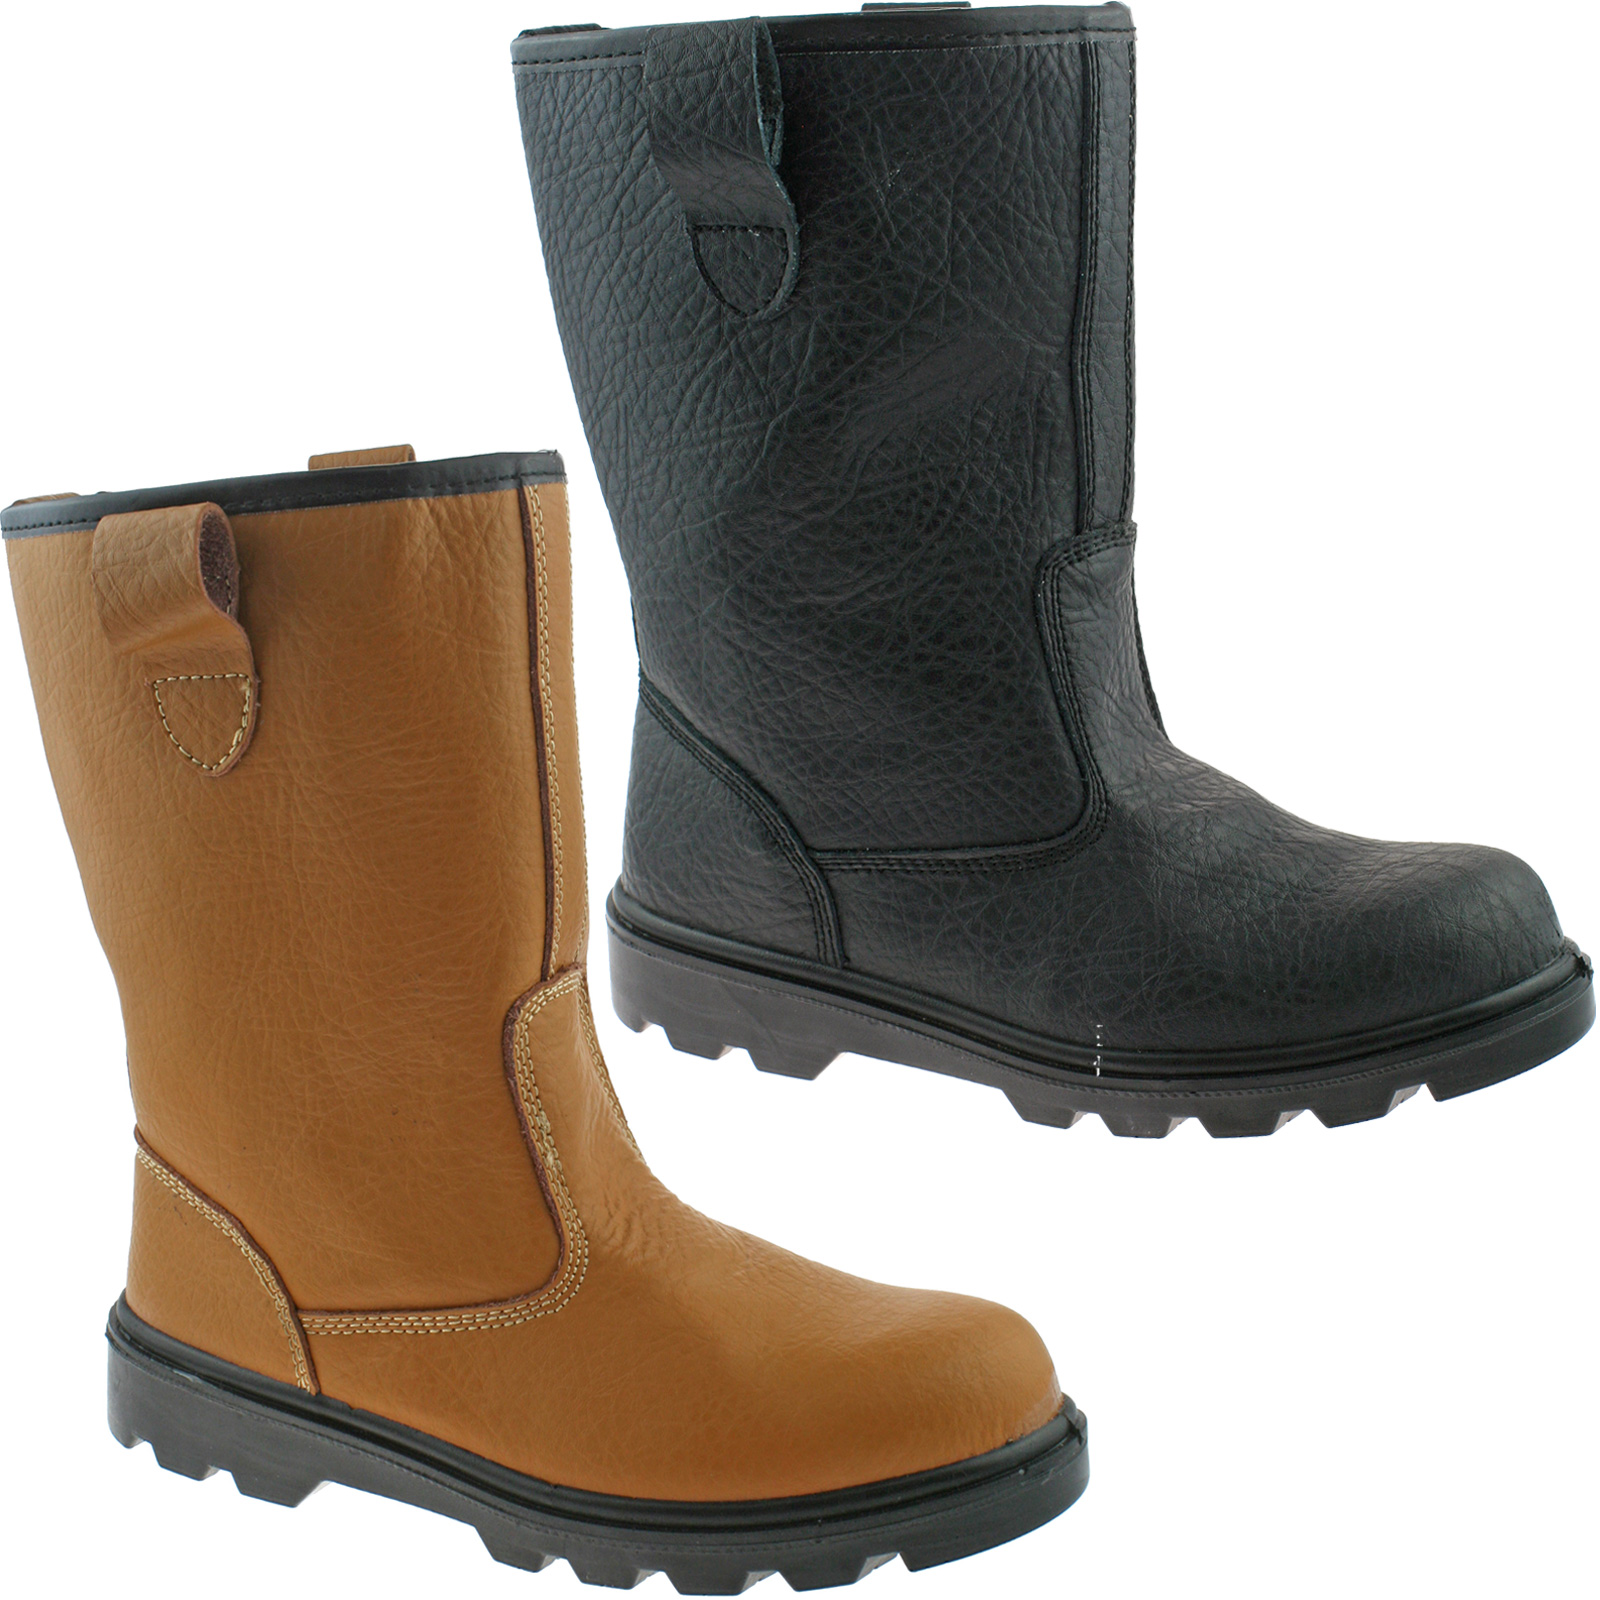 Rigger Boots Manufacturers in Barbuda